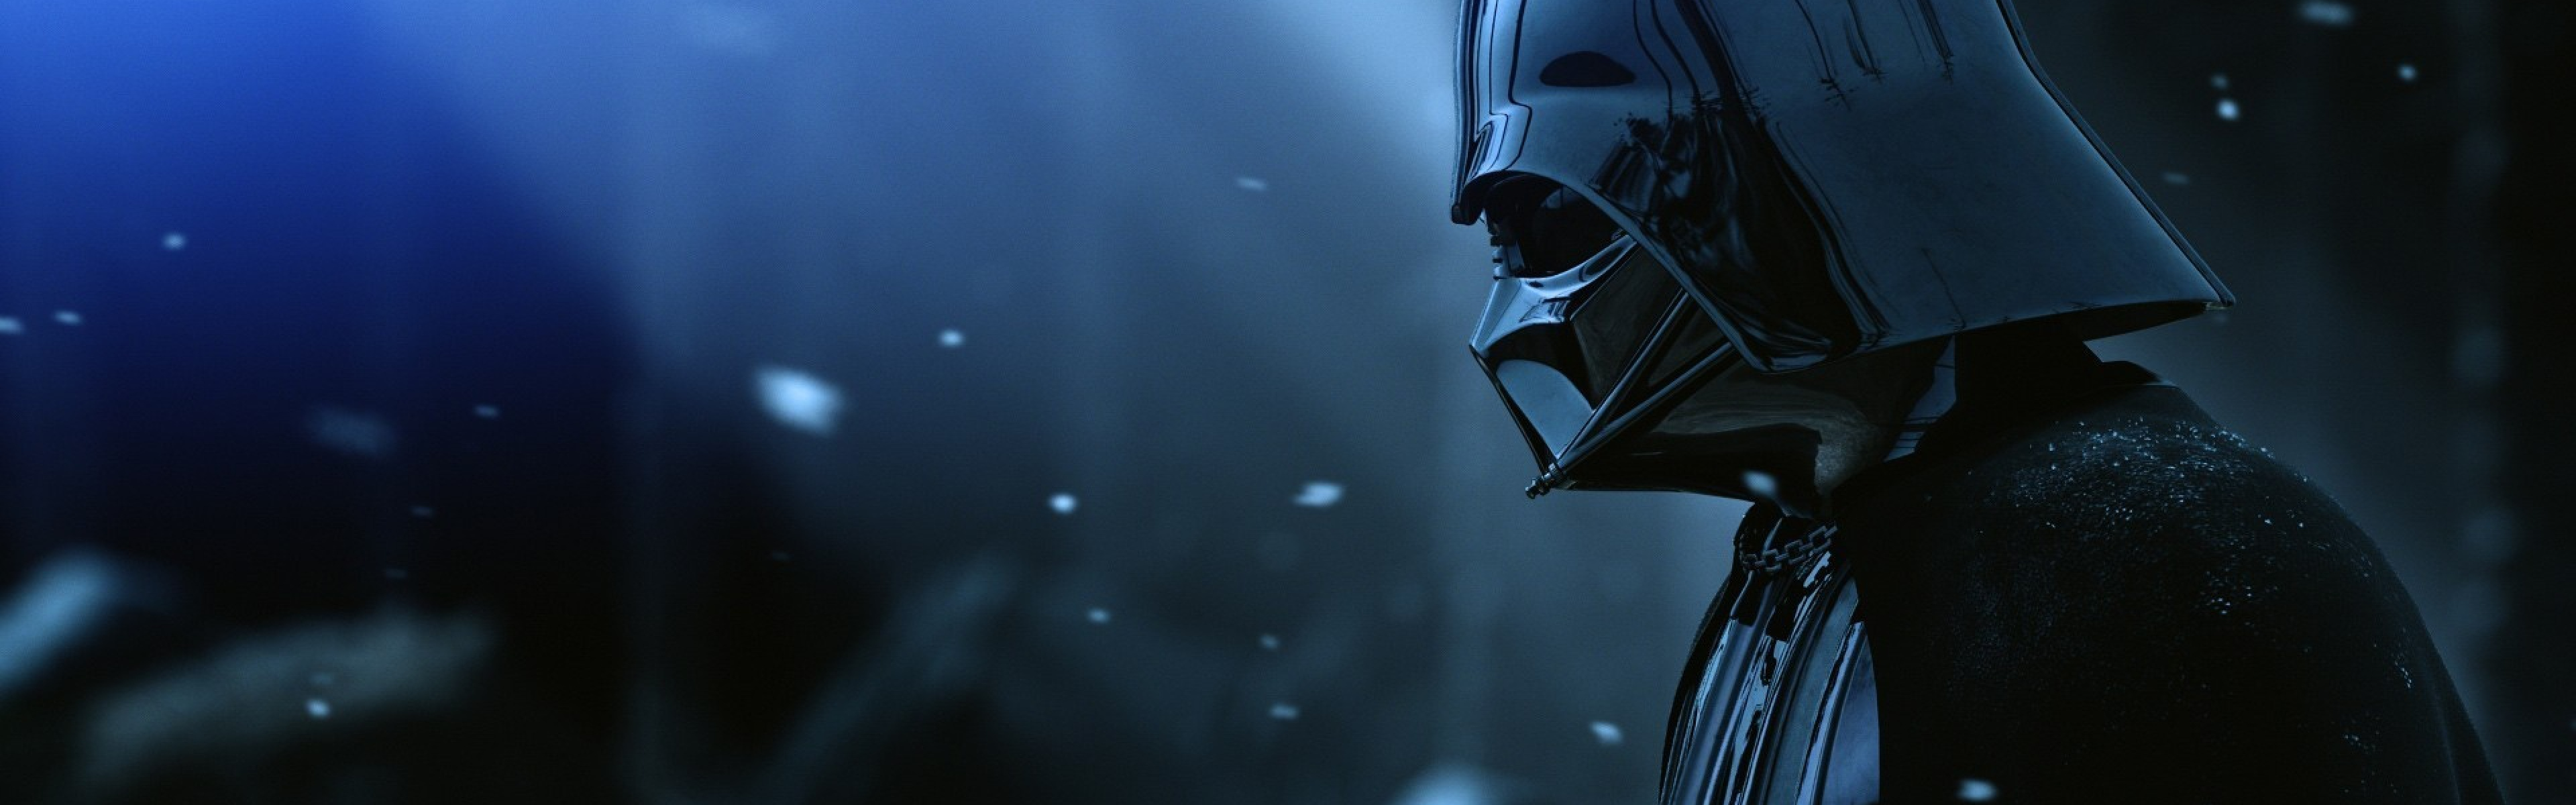 Download Wallpaper 3840x1200 darth vader armor star wars film hat 3840x1200